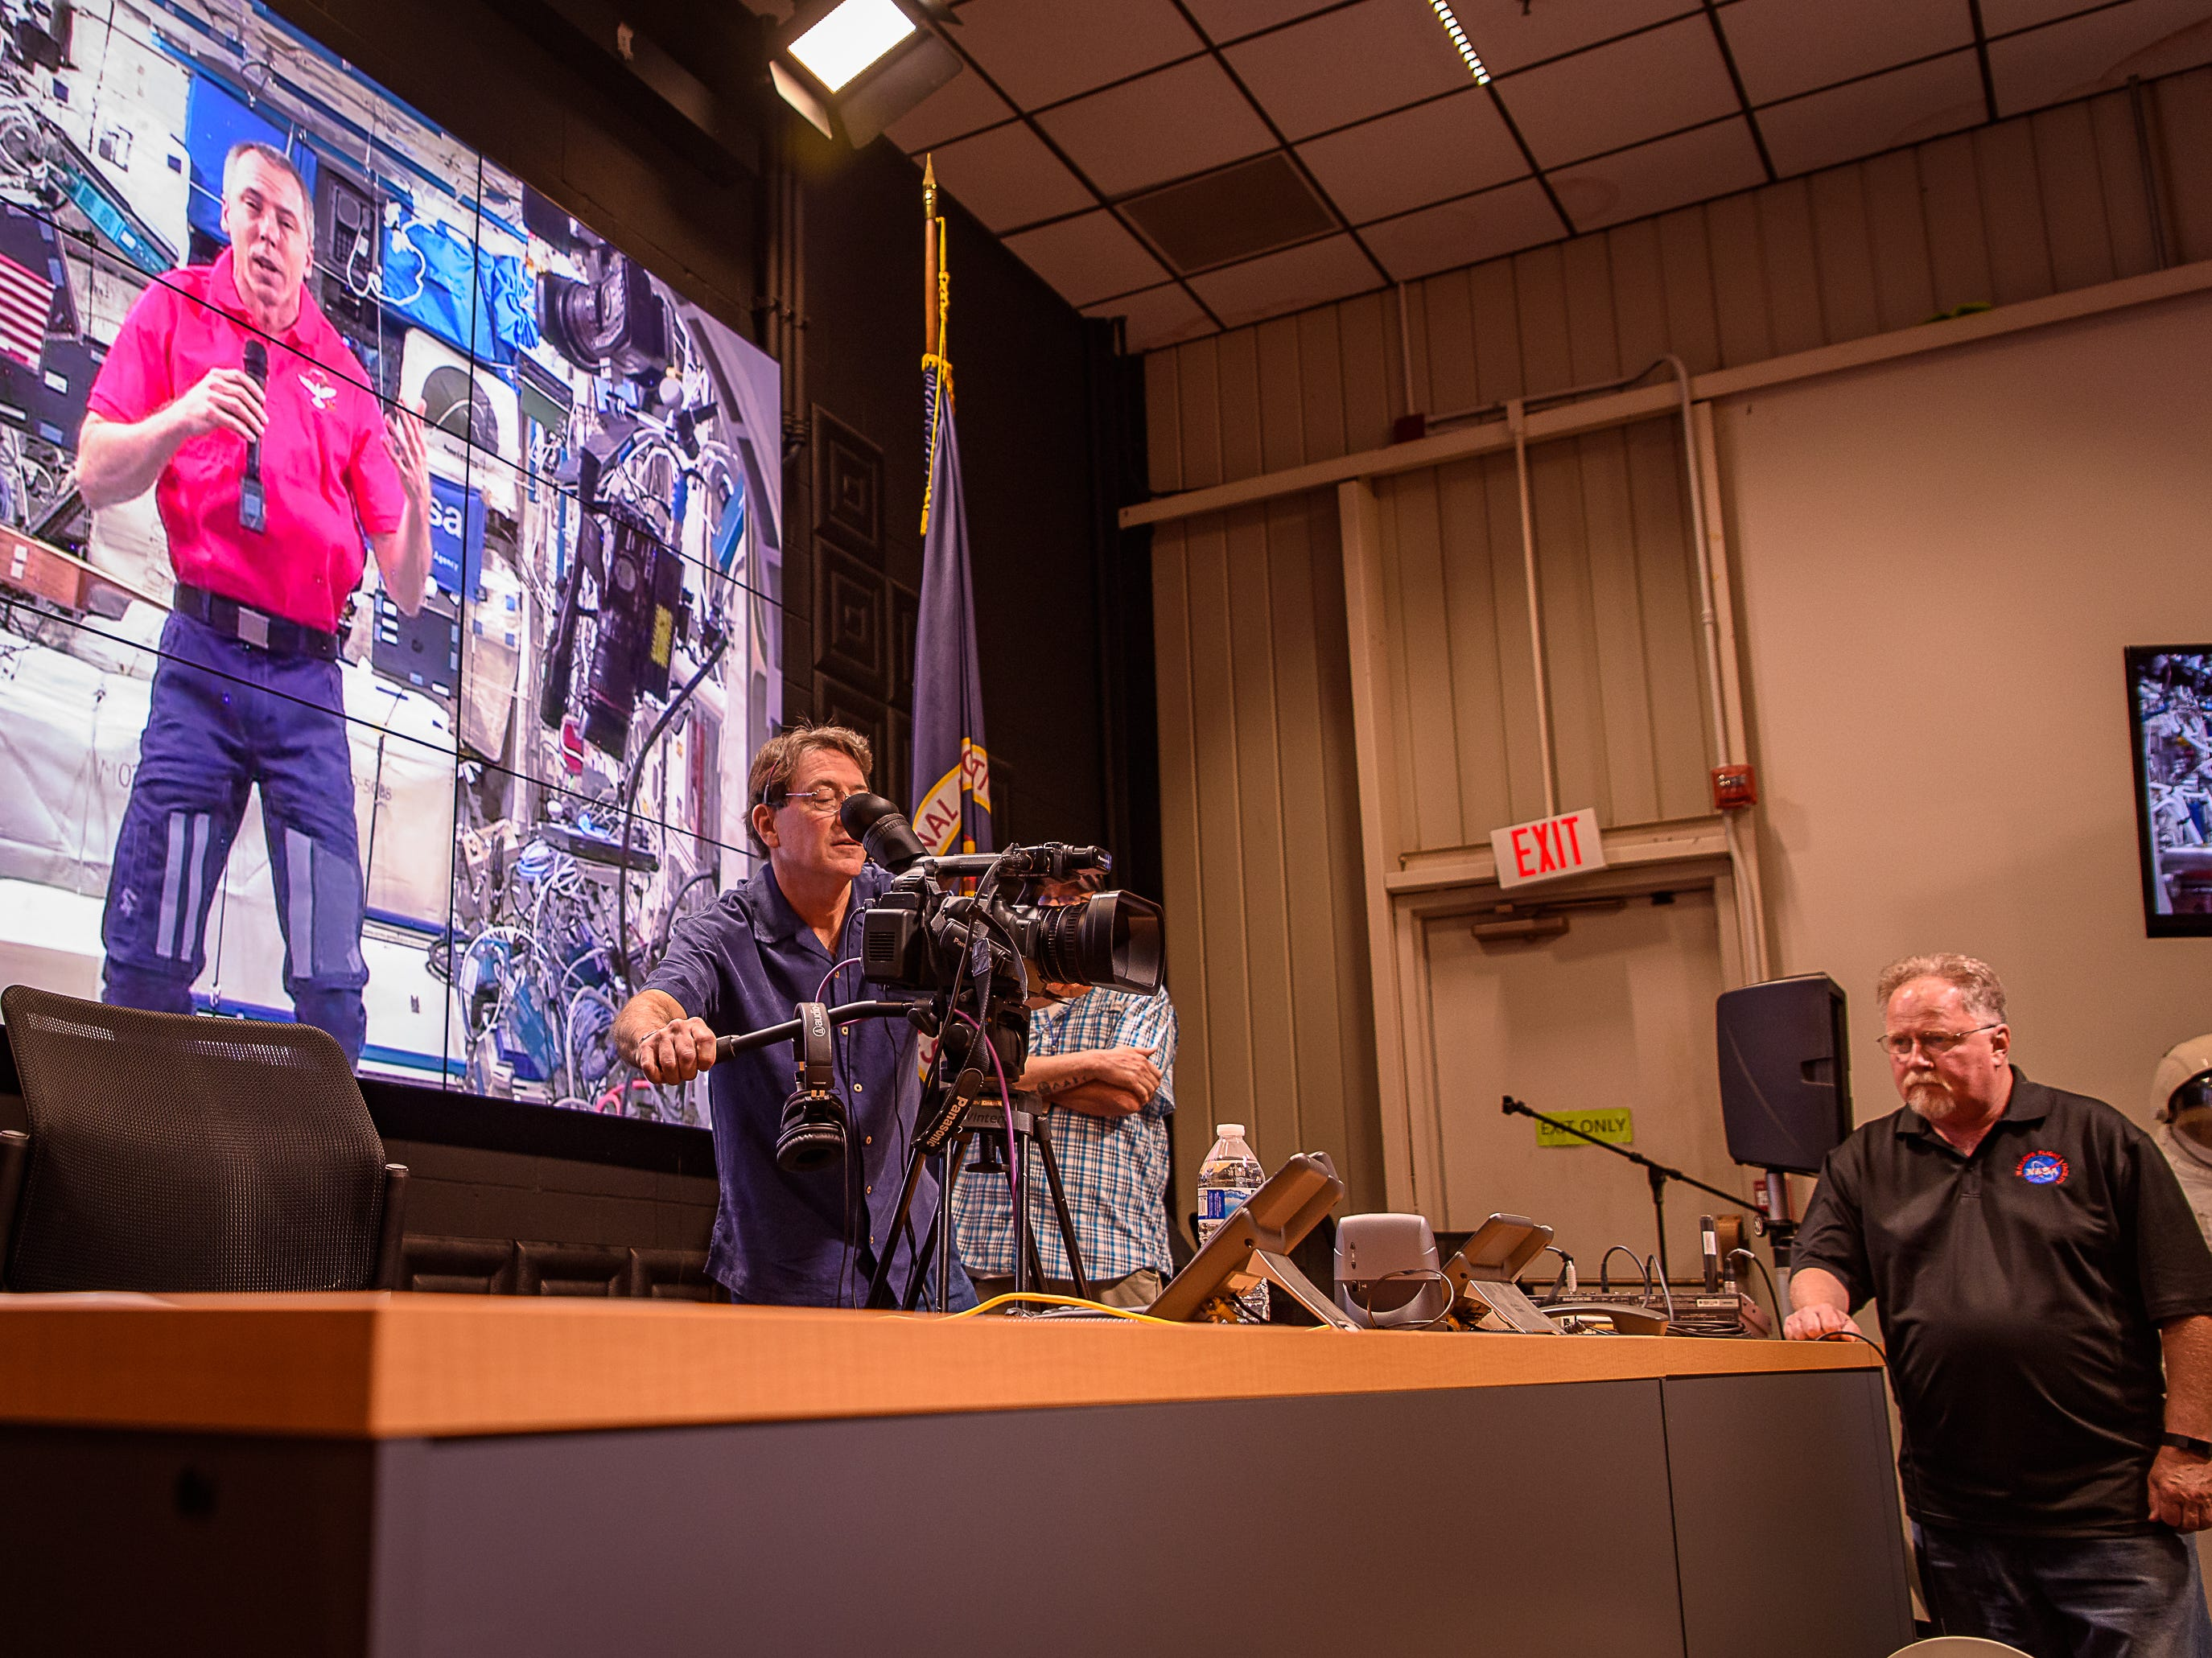 Patrick Kennedy, left, and Mike Velle, technicians with the Wallops Flight Facility, work to make sure everything works before students spoke with astronauts aboard the International Space Station as part of NASA's Year of Education on Station on Aug. 2, 2018.